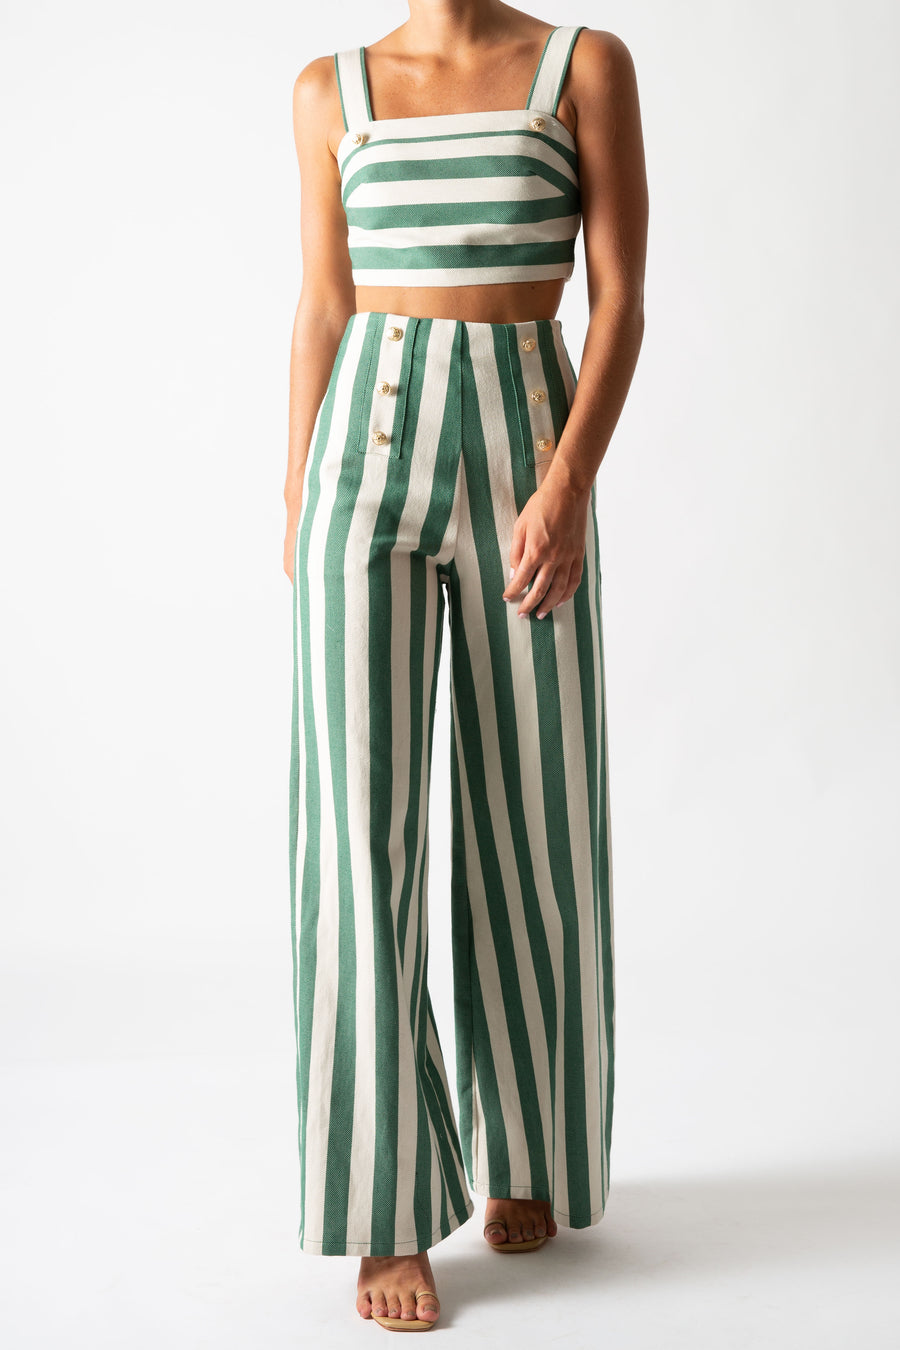 This is a photo of a woman wearing a matching two piece green striped set with gold buttons.  The pants are high waisted and long with a flare and the top is cropped with straps.